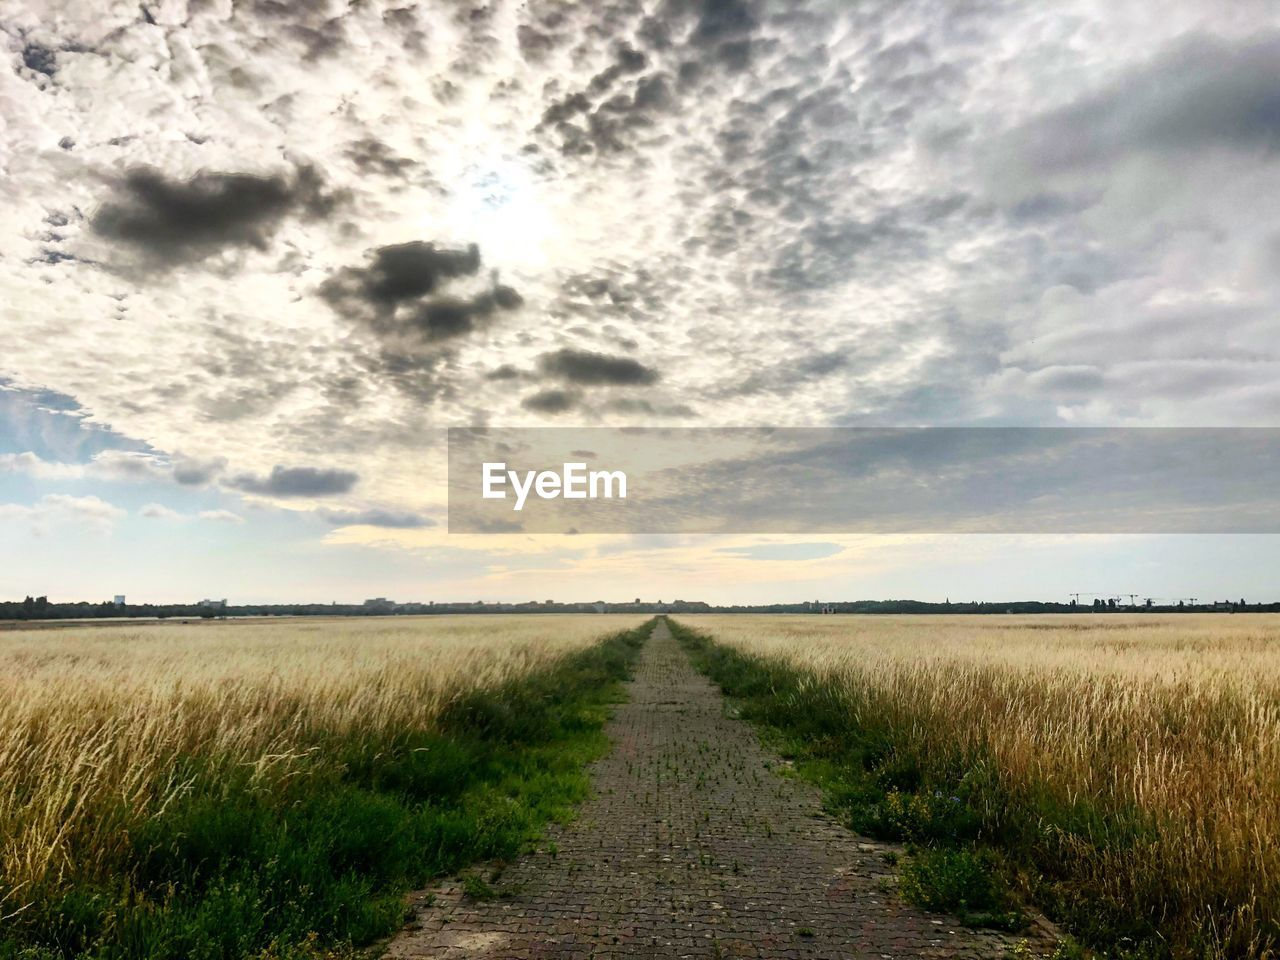 sky, cloud - sky, landscape, land, field, the way forward, tranquility, environment, direction, tranquil scene, grass, beauty in nature, nature, scenics - nature, plant, no people, road, rural scene, vanishing point, horizon over land, diminishing perspective, outdoors, long